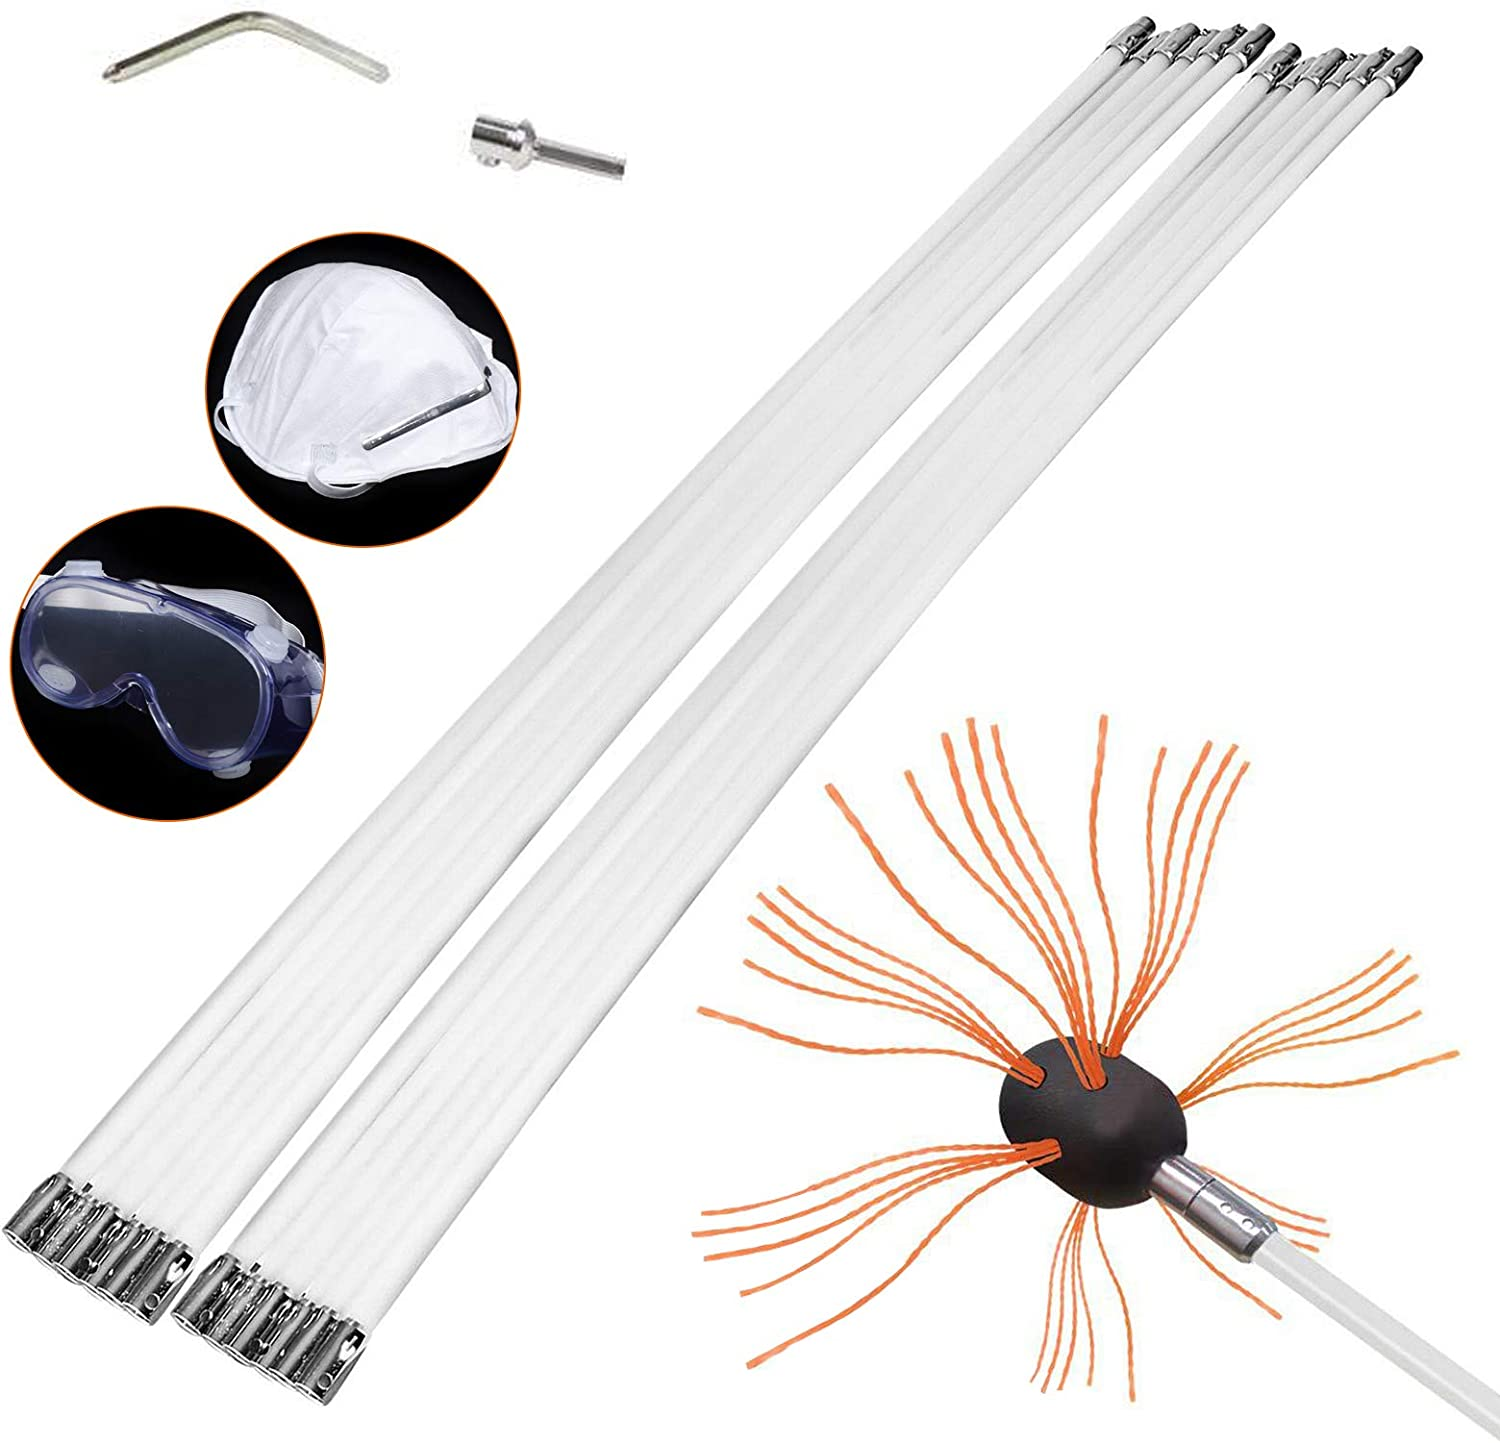 Flexible Chimney Rods Long Rod Cleaner Popular products Brush 40% OFF Cheap Sale Swe